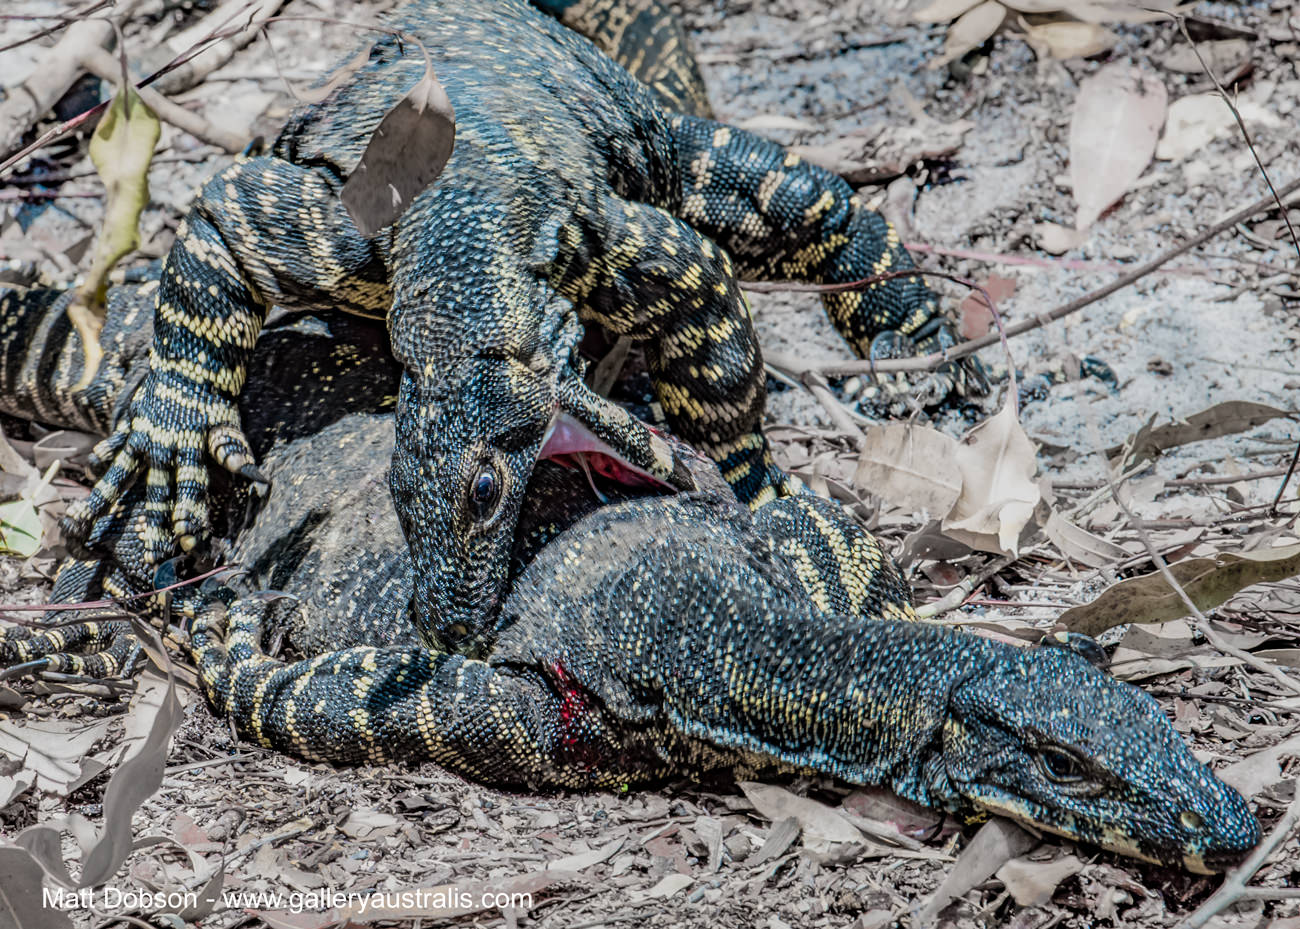 Goannas fight in Mungo Brush National Park